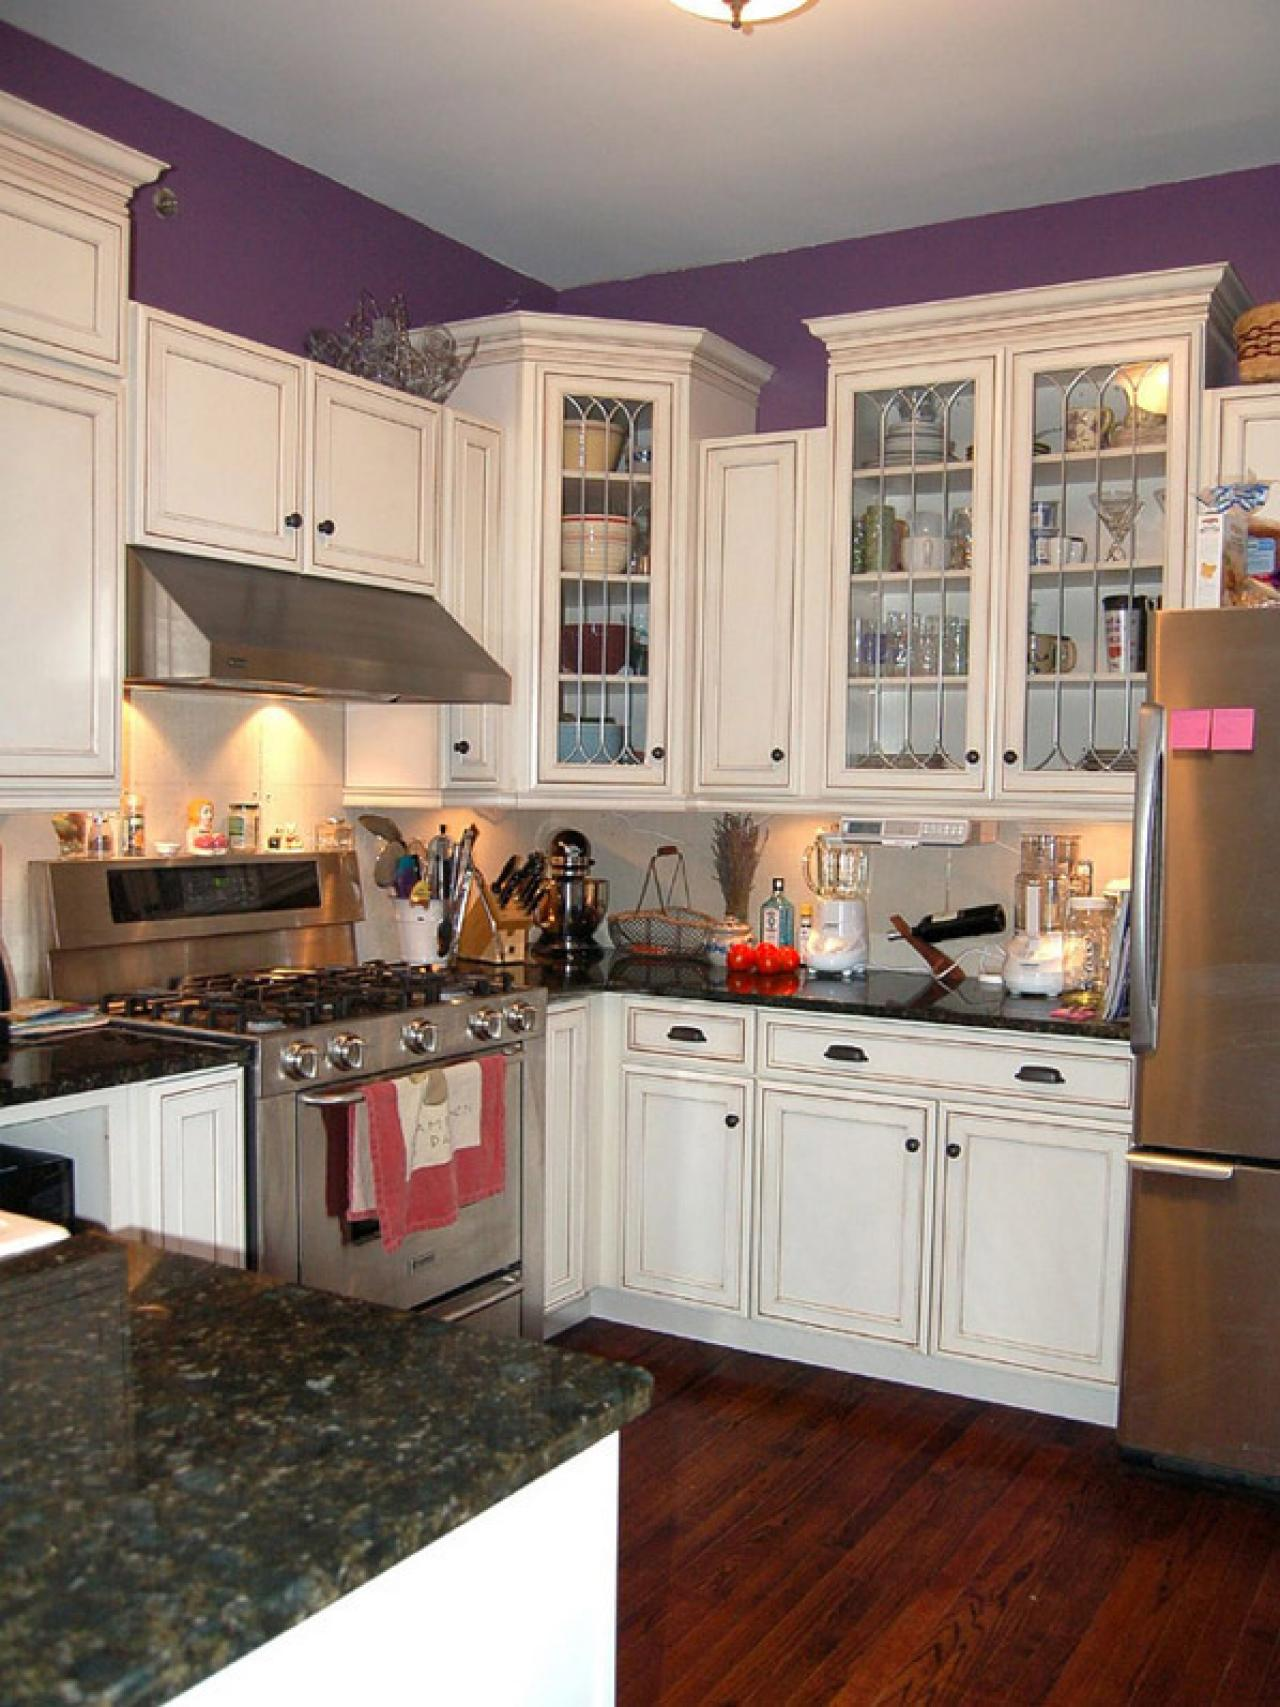 original_kitchen-white-cabinets-purple-walls_s3x4-jpg-rend-hgtvcom-1280-1707